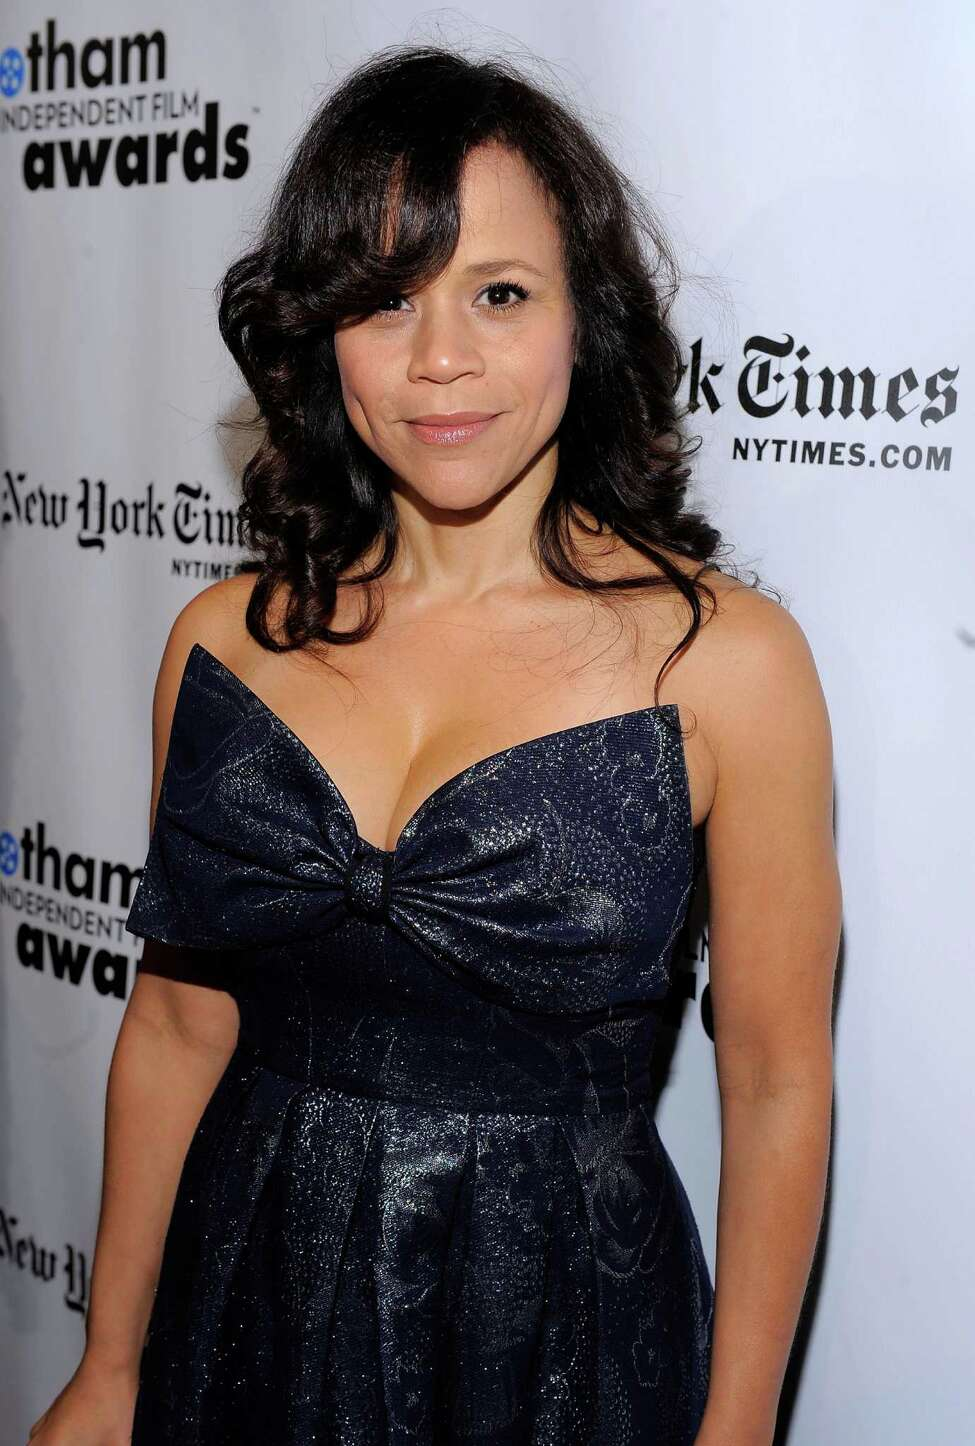 NEW YORK - NOVEMBER 30: Actress Rosie Perez attends IFP's 19th Annual Gotham Independent Film Awards at Cipriani, Wall Street on November 30, 2009 in New York City. (Photo by Jemal Countess/Getty Images for IFP)